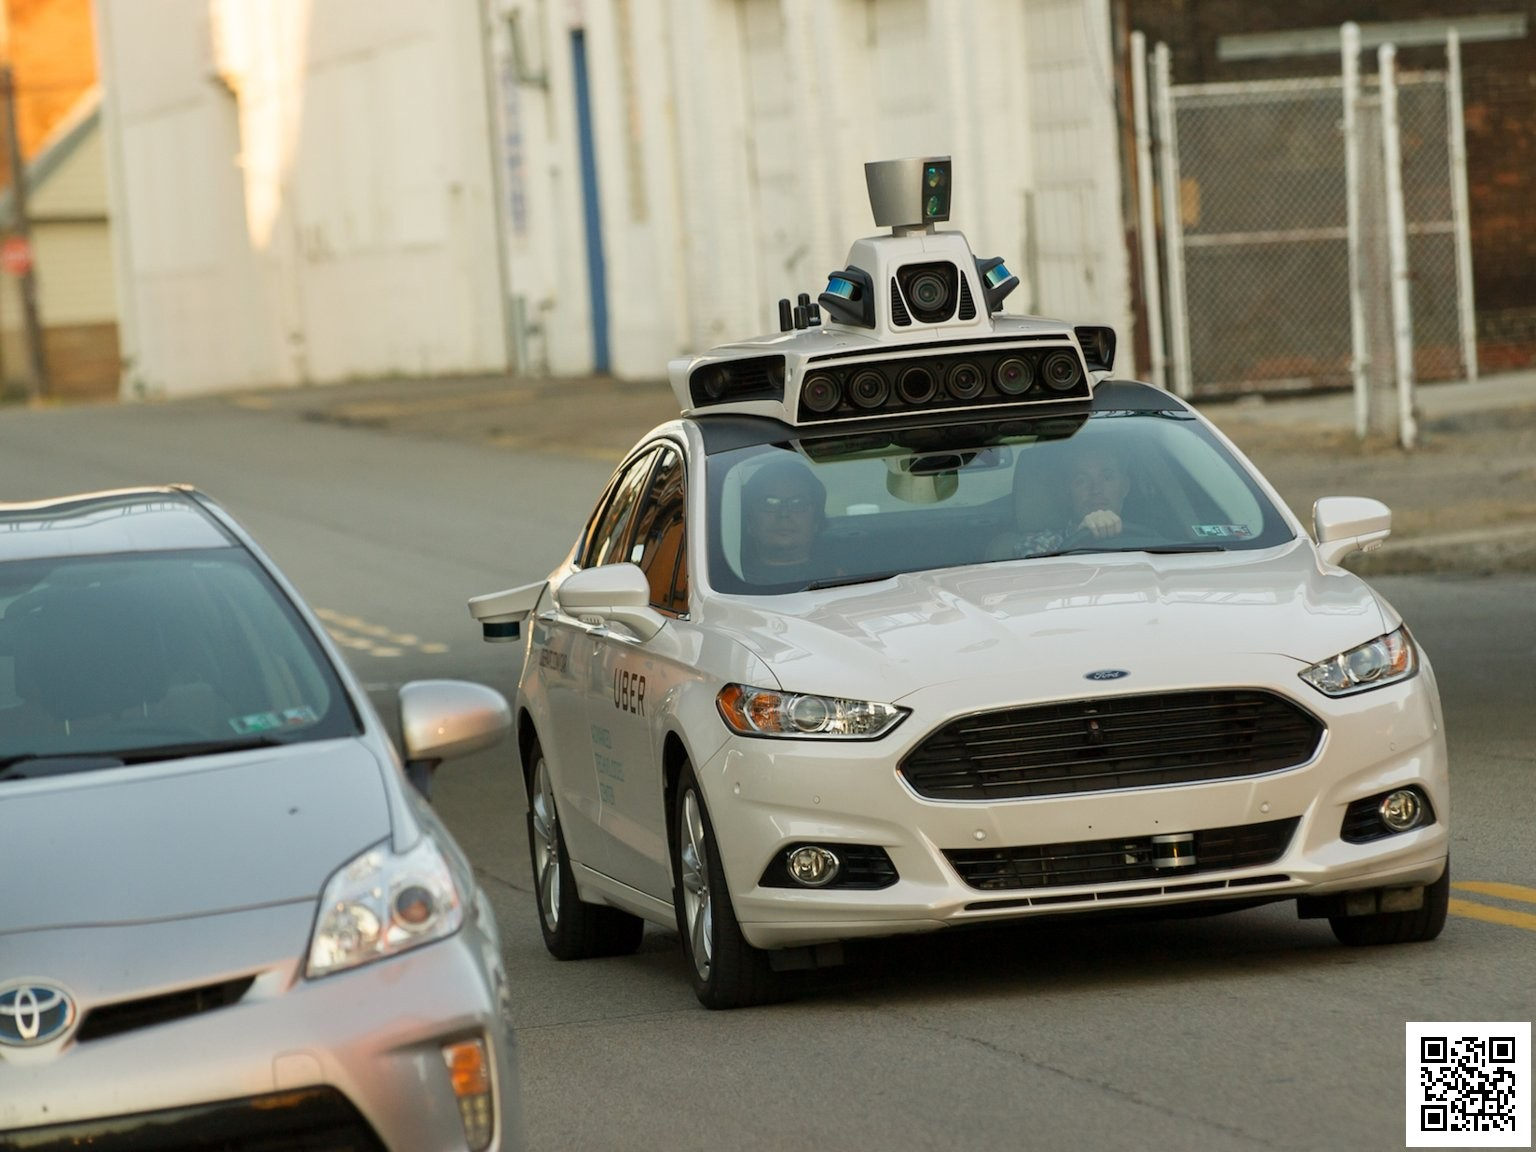 Self-Driving Cars May Hit People